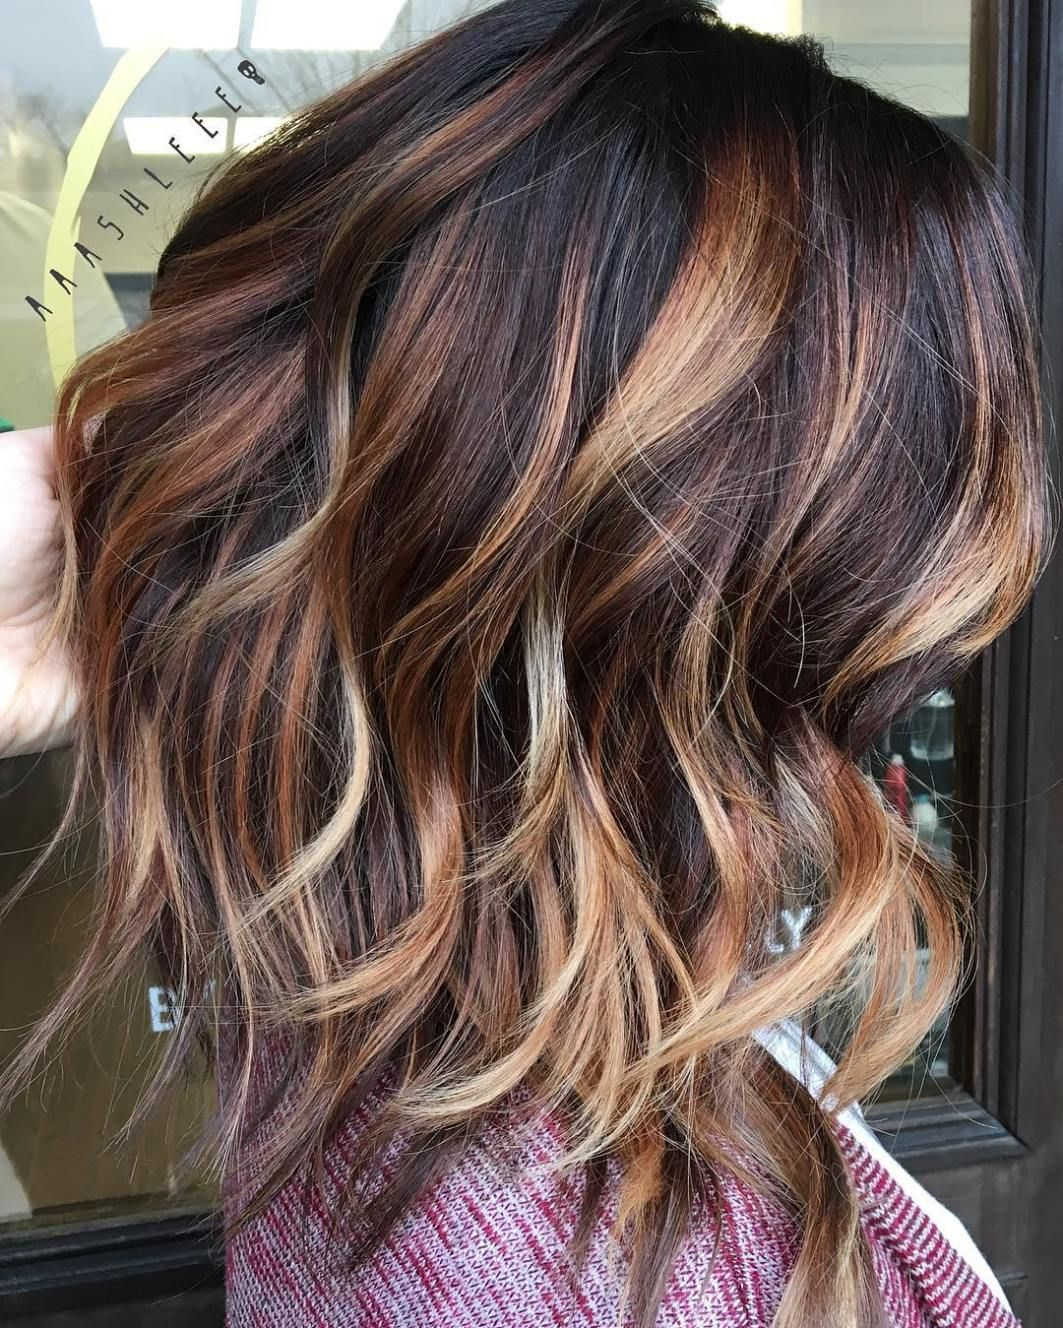 50 Best Medium Length Haircuts For Thick Hair To Try In 2020 Hair Adviser In 2020 Fall Hair Color Trends Fall Hair Color For Brunettes Brunette Hair Color